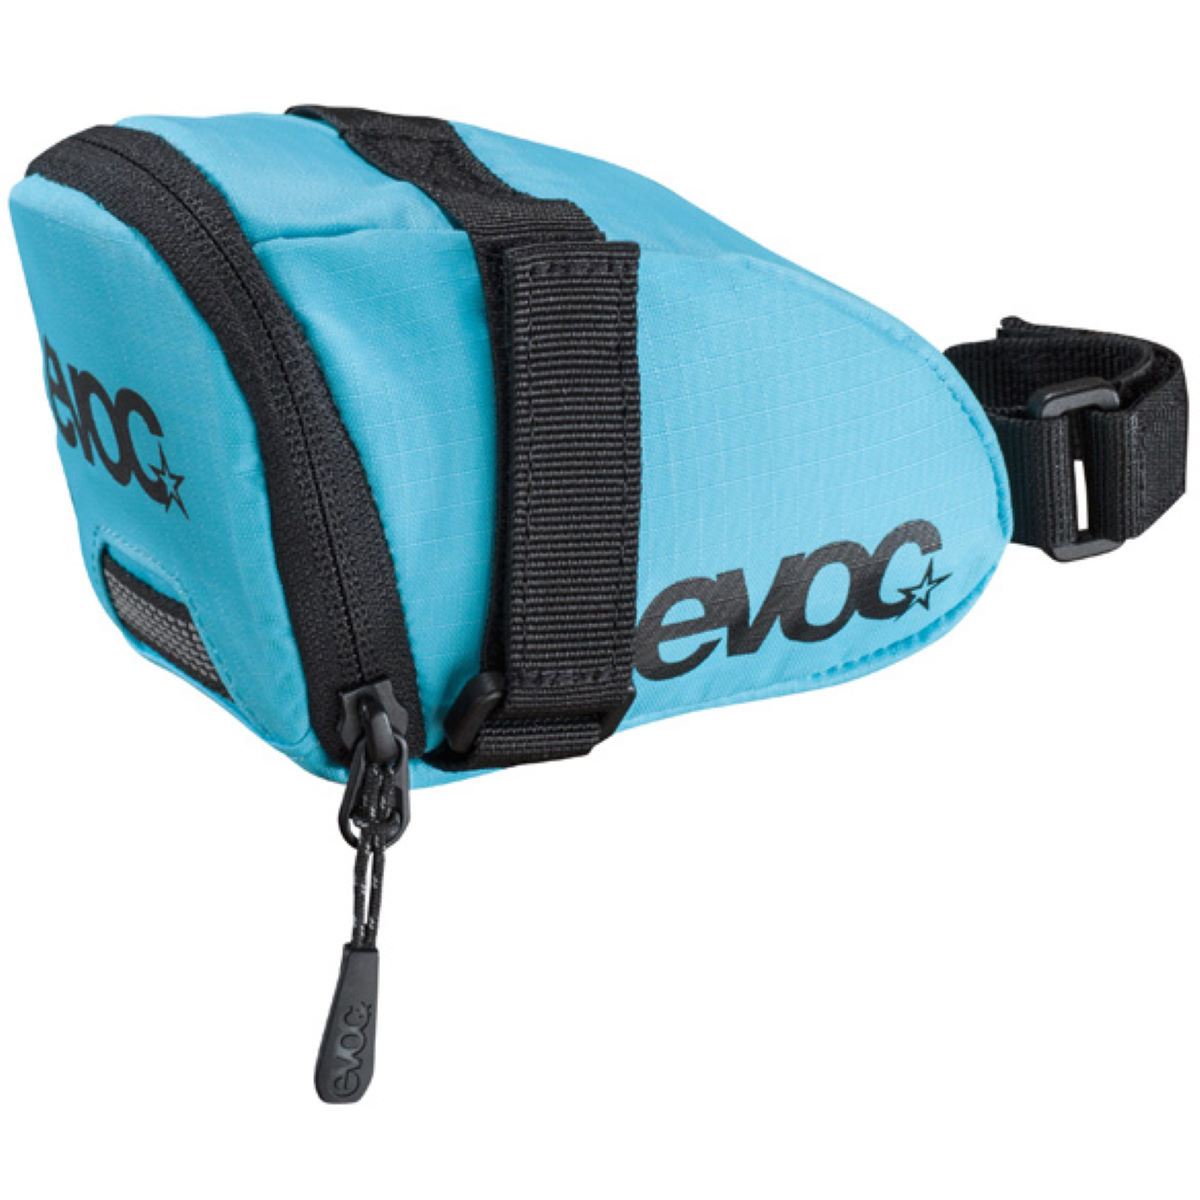 Evoc Saddle Bag - 0.7L